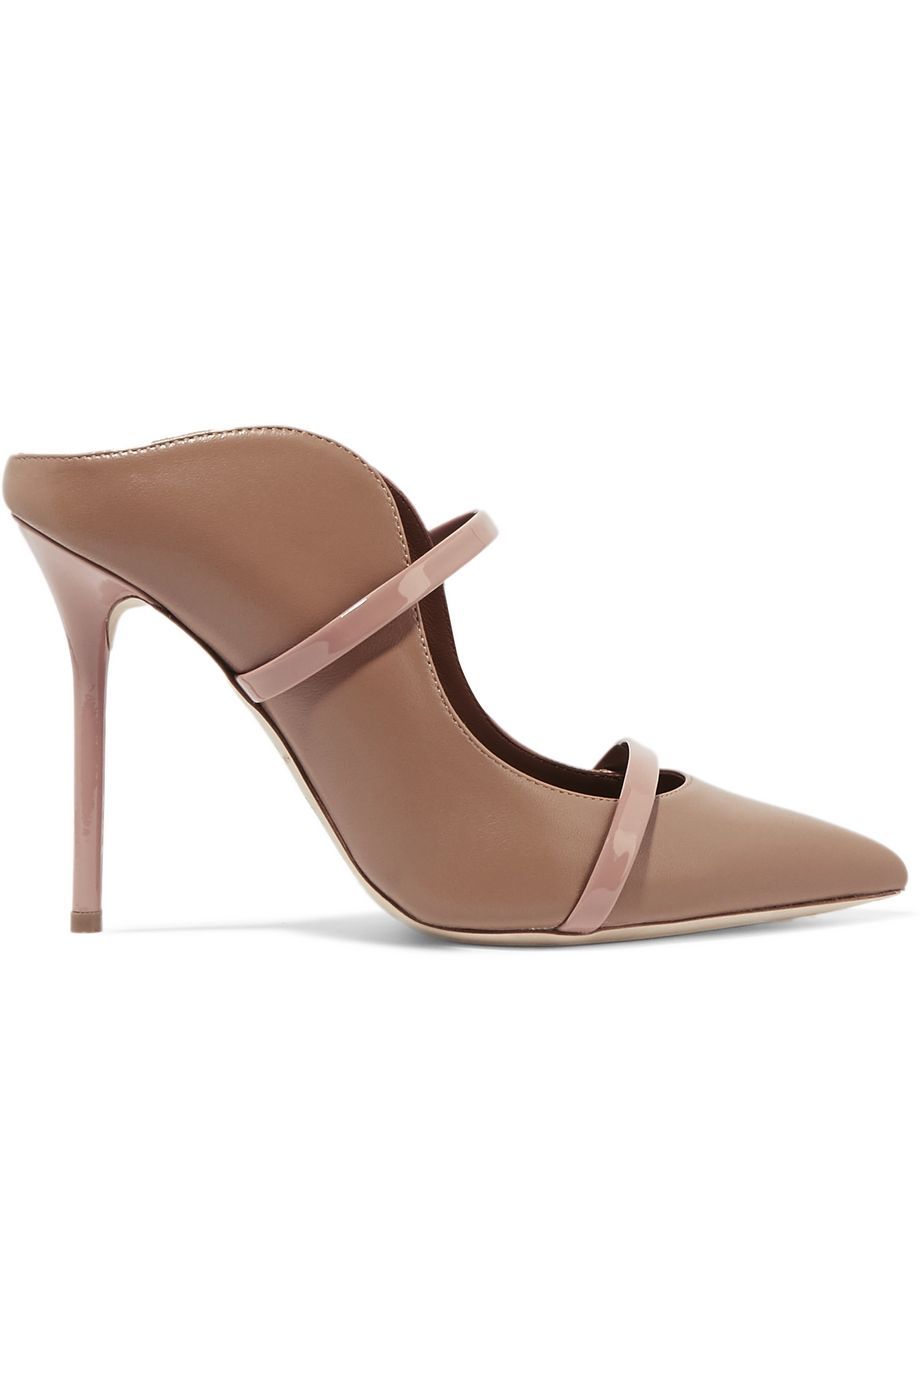 Malone Souliers Maureen 100 patent-trimmed leather mules